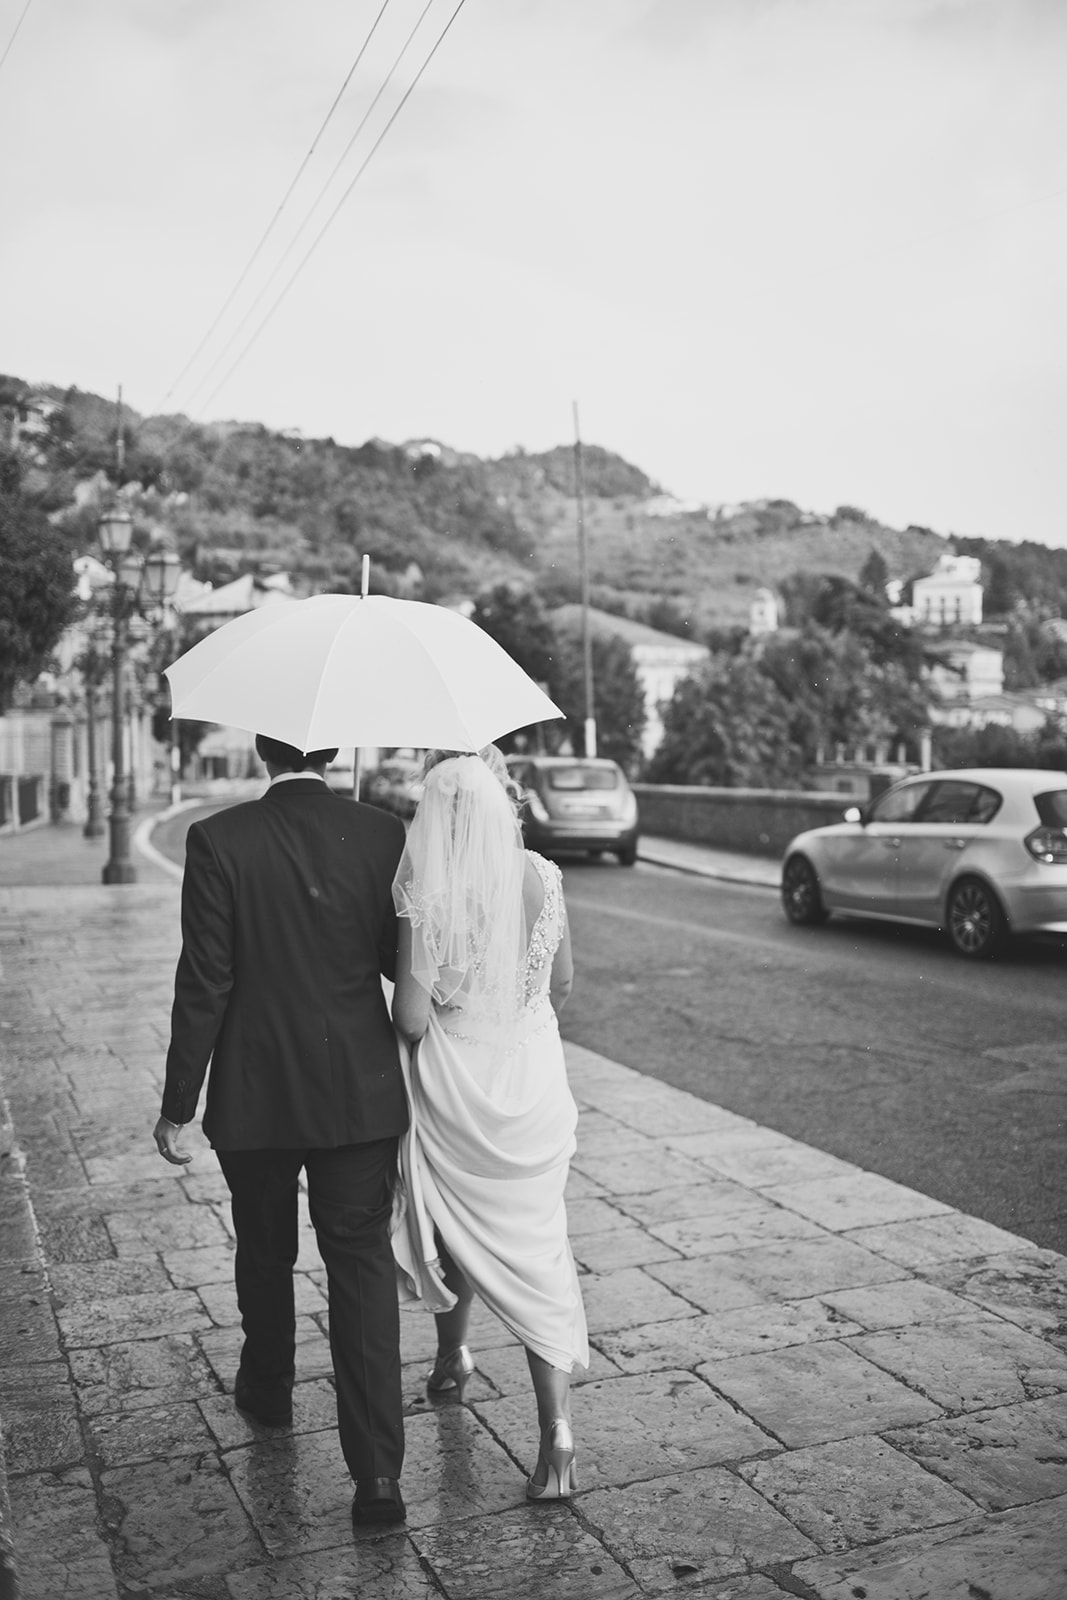 black and white photo of a bride and groom walking down the street with an umbrella in the rain. destination wedding photography in italy, rome. stop motion wedding films